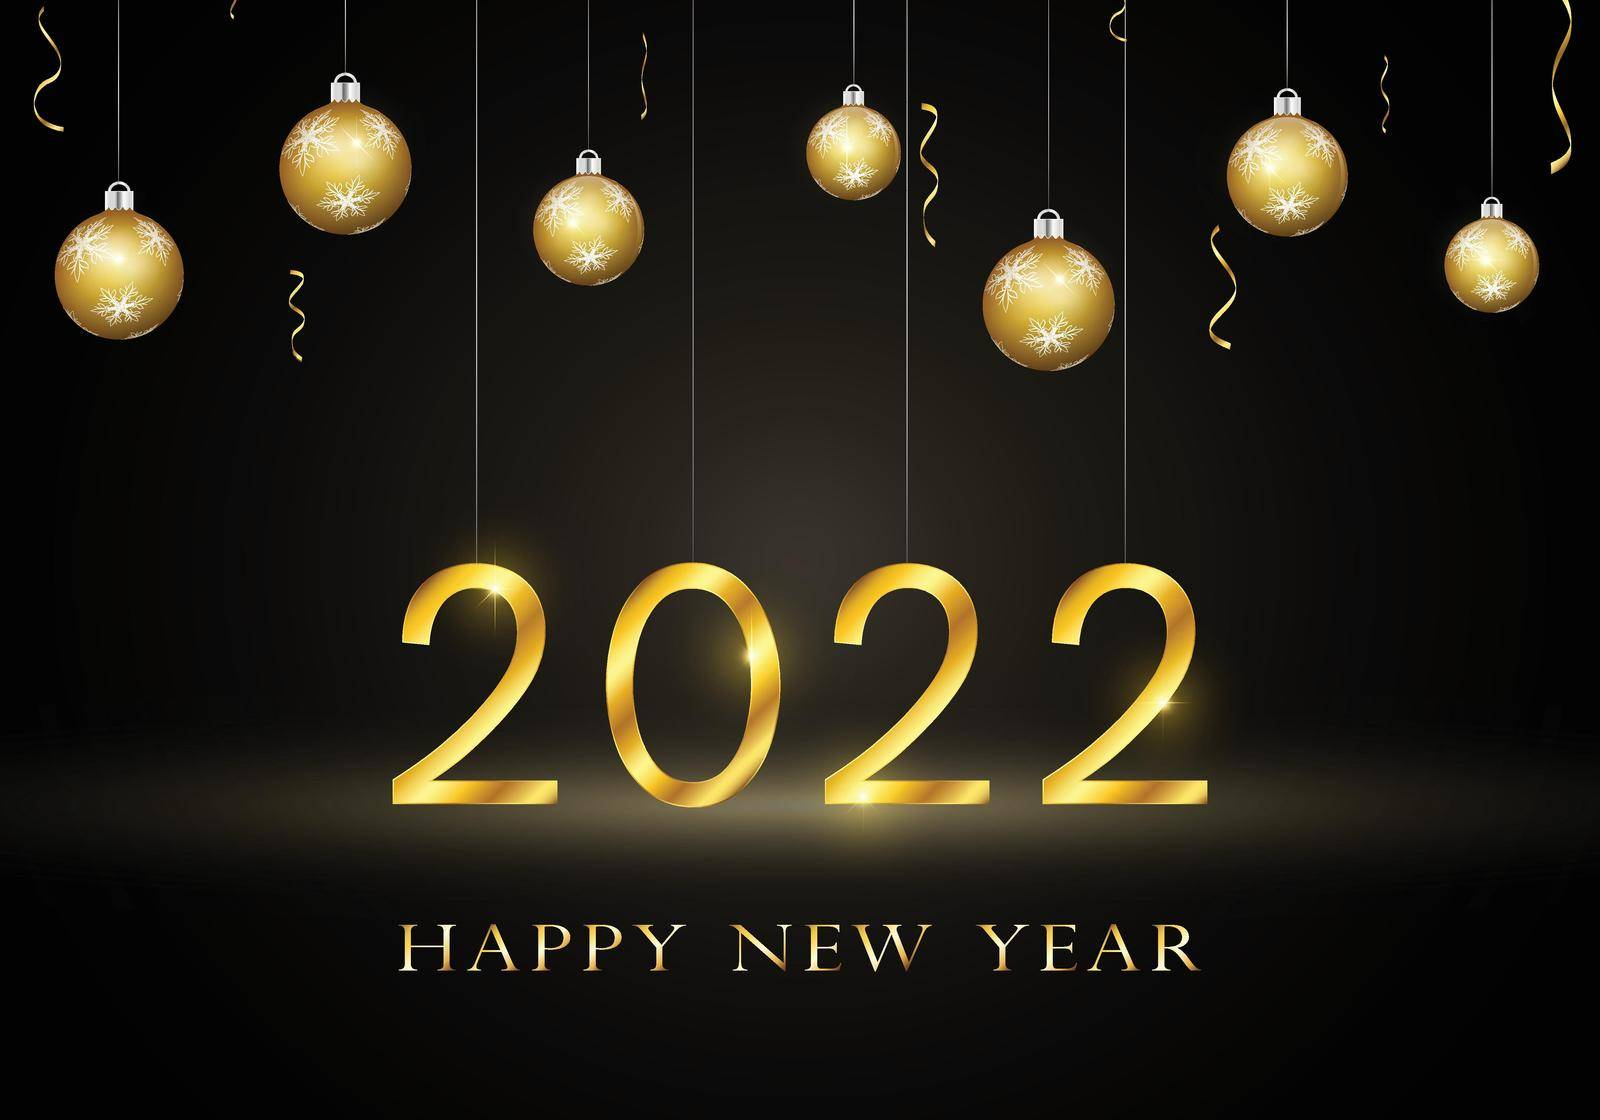 2022 Happy New Year background with gold shiny numbers and letters. Hanging christmas tree ornaments, falling golden confetti. Dark celebration design with lights. 3D illustration.